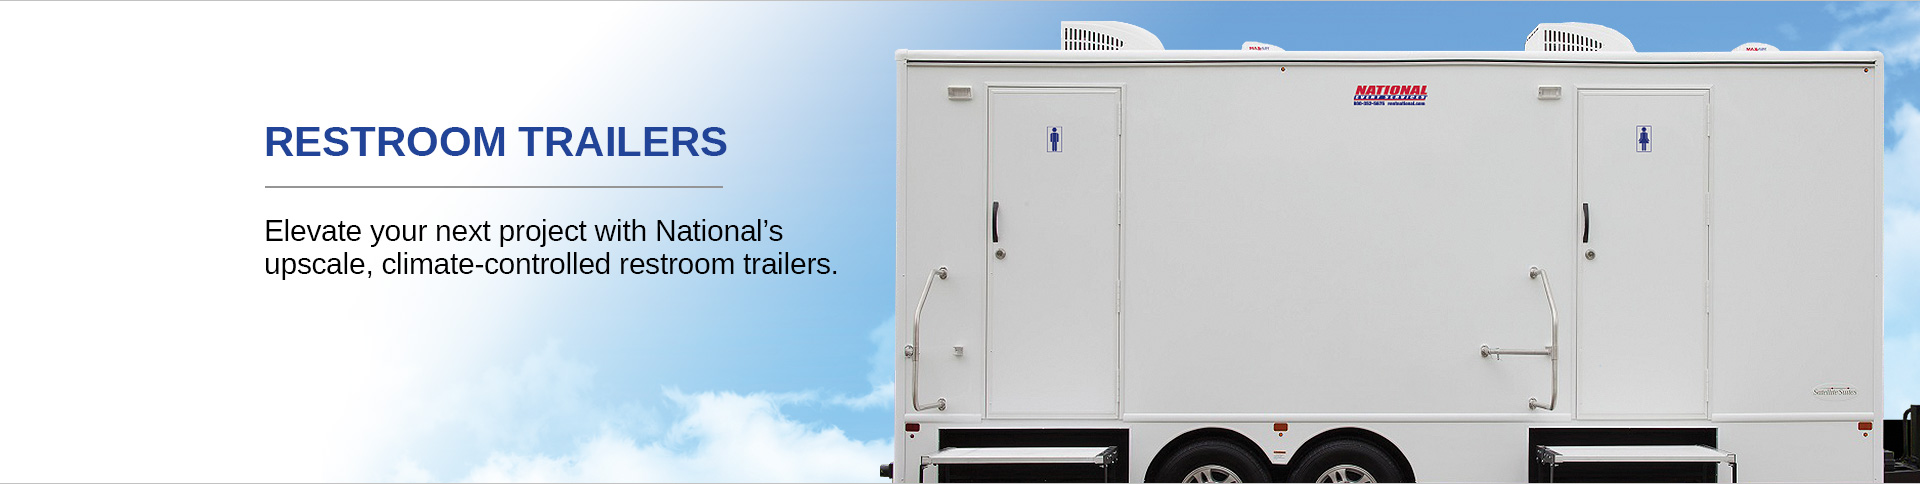 High End Multi-Stall Restroom Trailer for Special Events